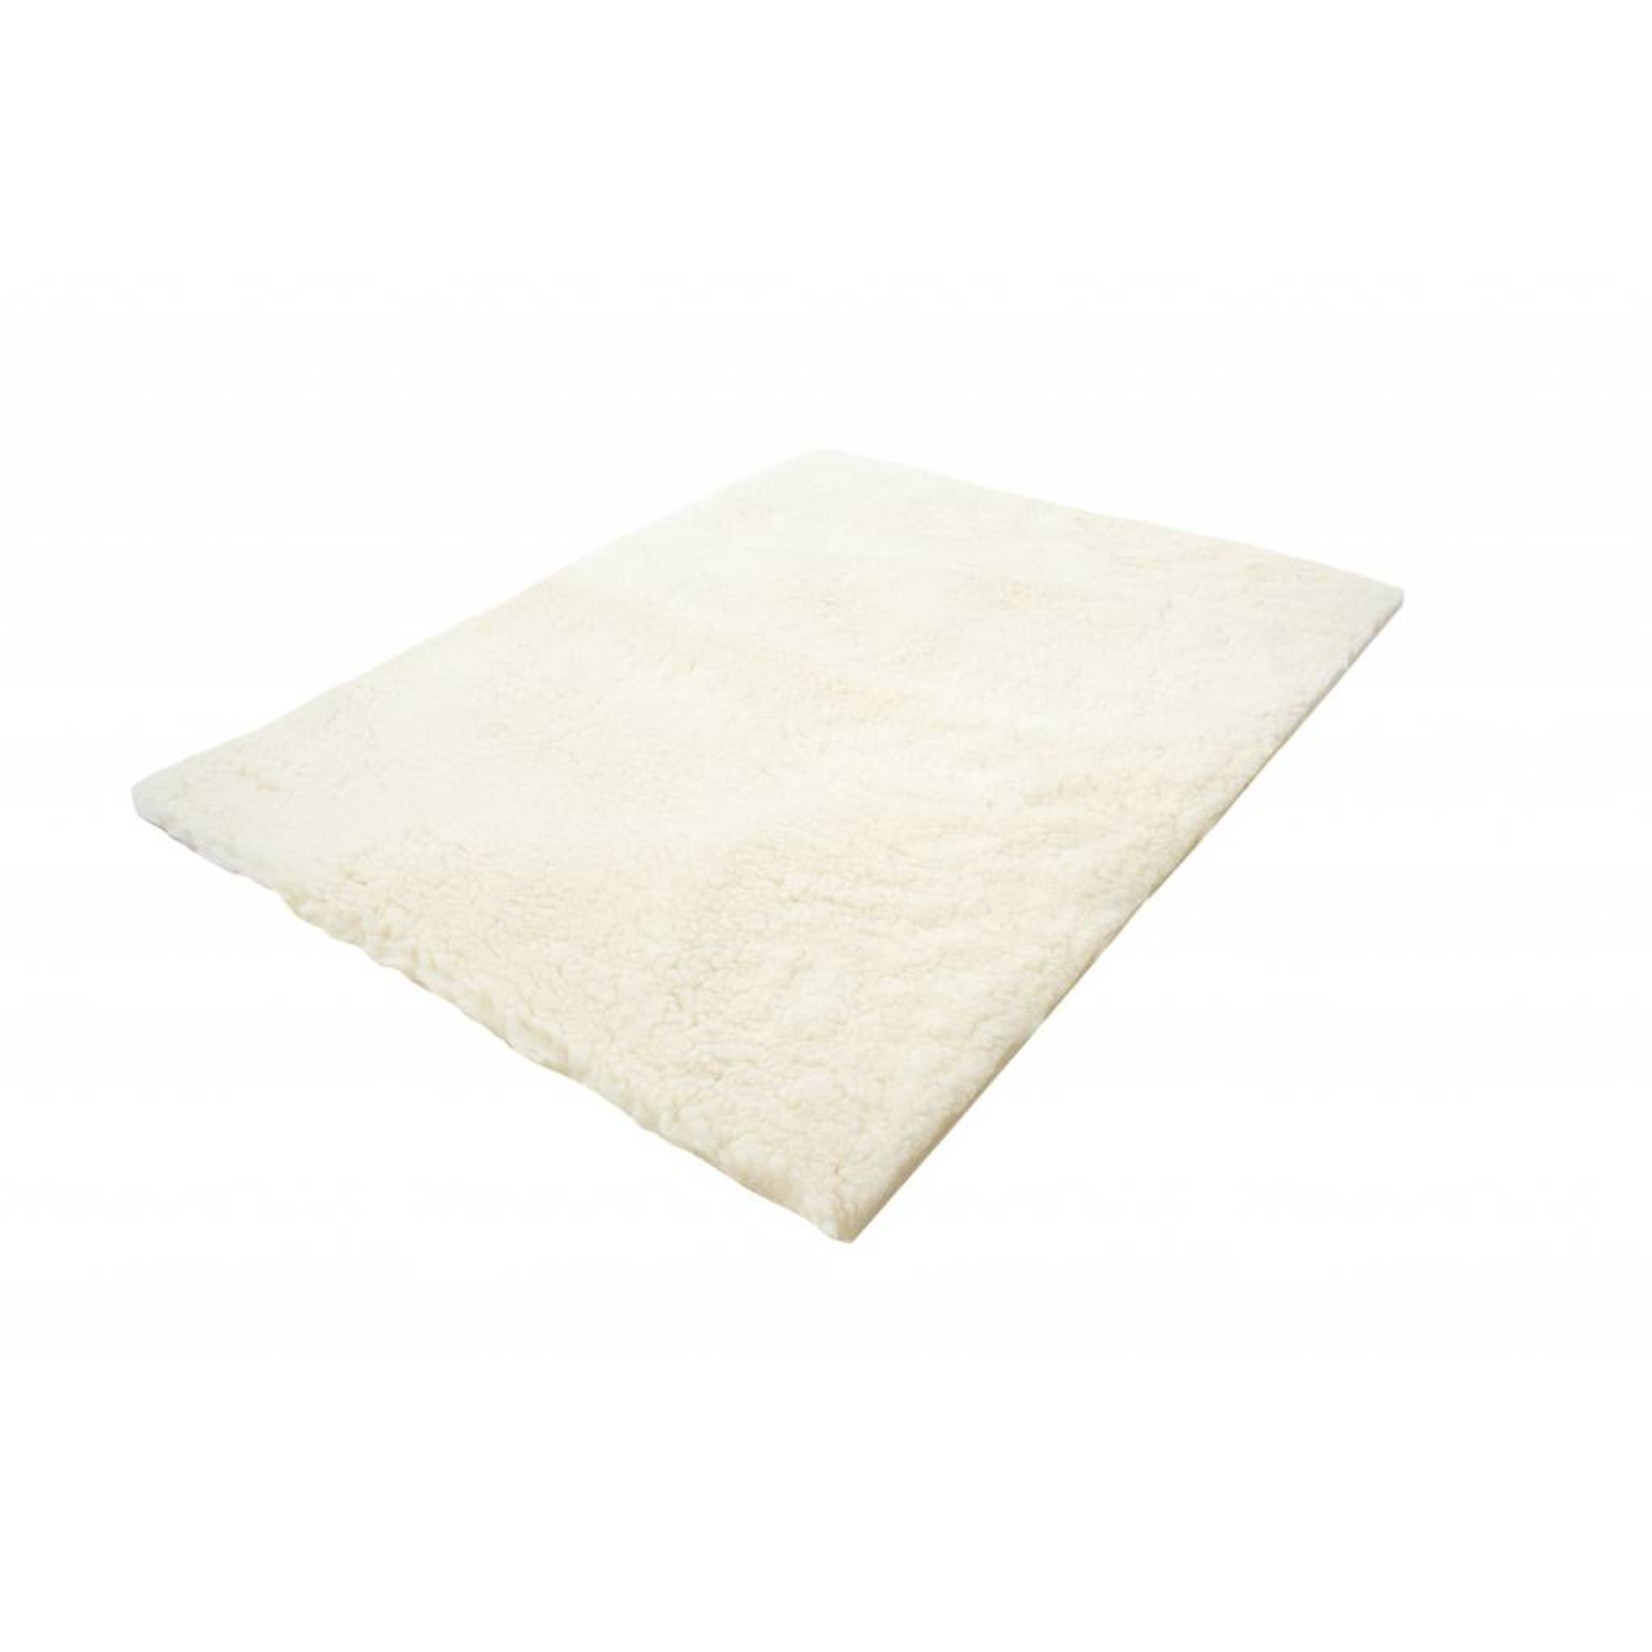 Essential Medical SHEEPETTE SYNTH LAMBSKIN 30x40 (6)